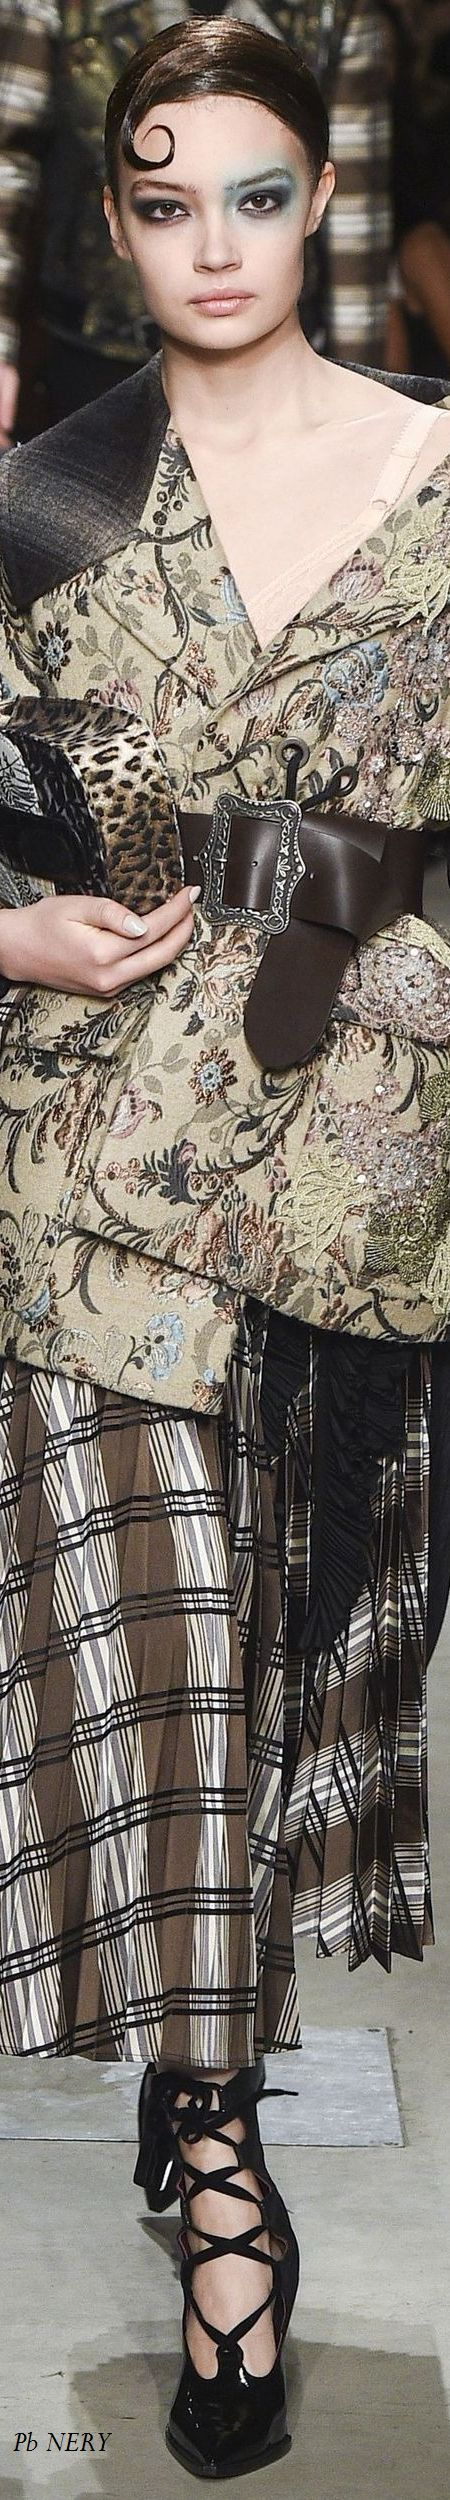 Antonio Marras Fall 2017 RTW